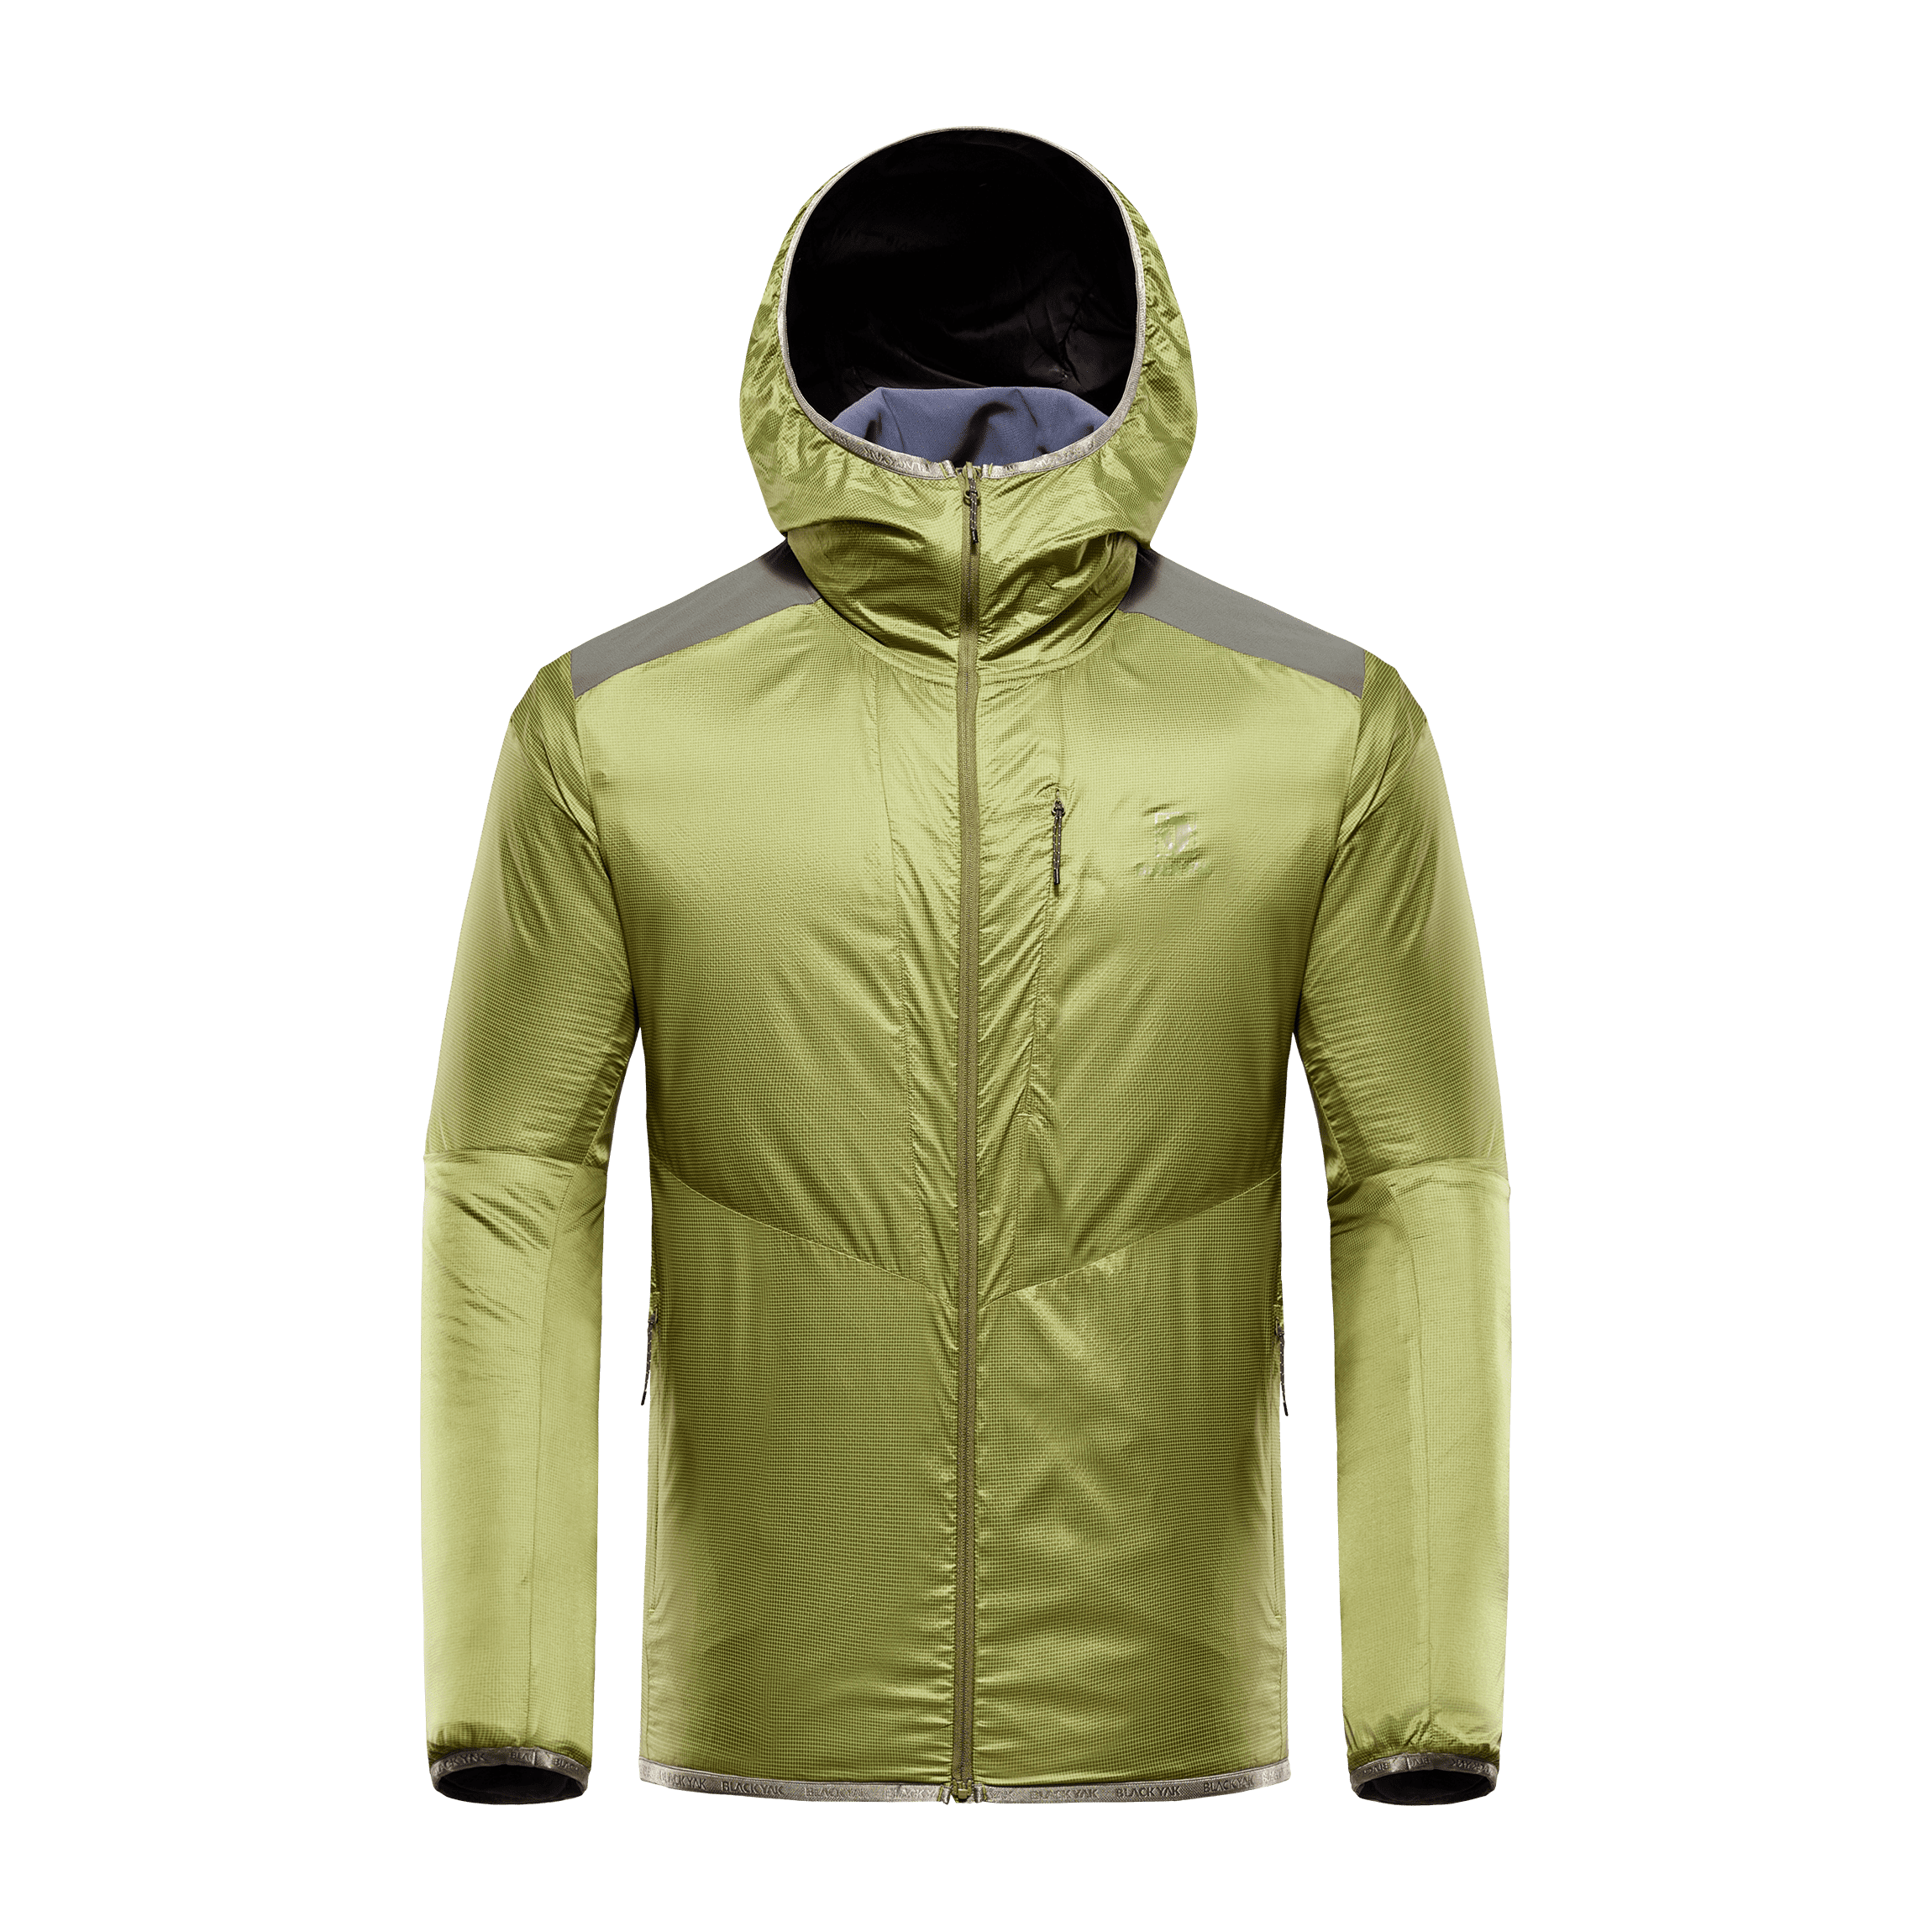 BARGUR LT JACKET